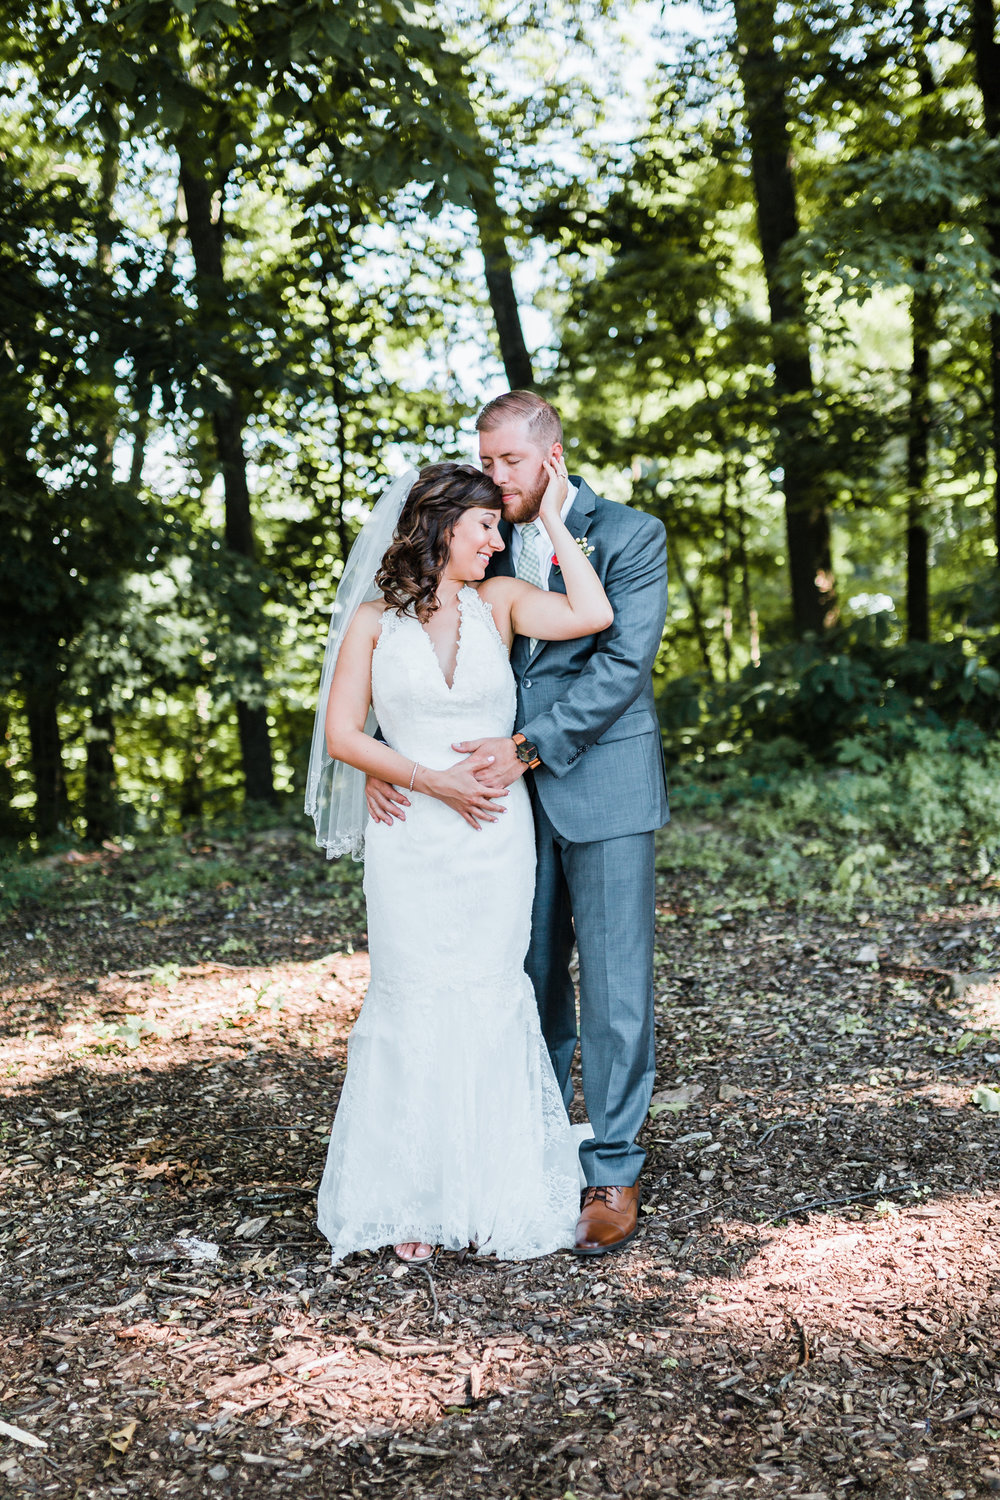 romantic woodland and adventurous mountain wedding in PA - MD wedding photographer and cinematographer